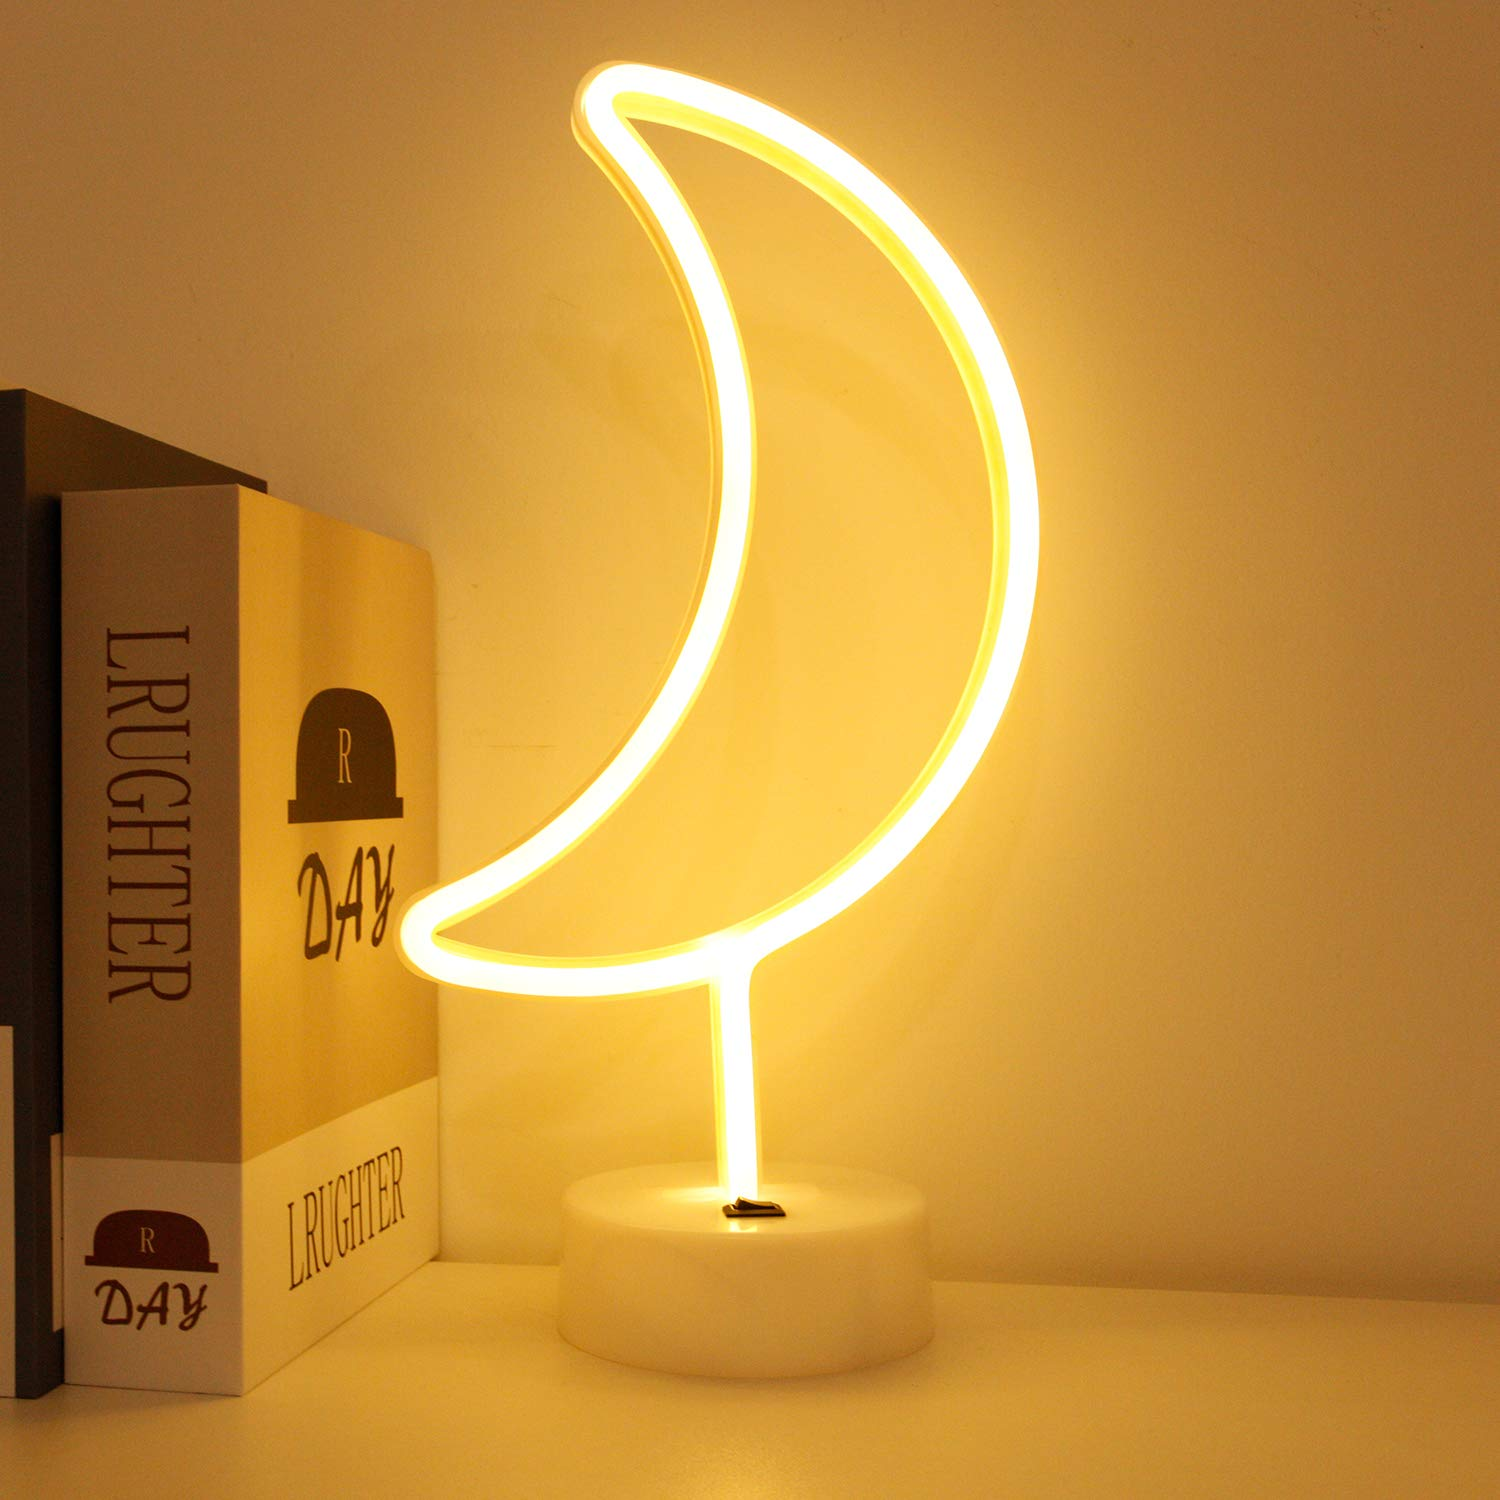 BHCLIGHT LED Moon Neon Light Signs Room Decor with Holder Base Night Lights Indoor Decor Battery Operated Light up Sign Bedside Table Lamps Neon Signs for Home Decoration Children GIF